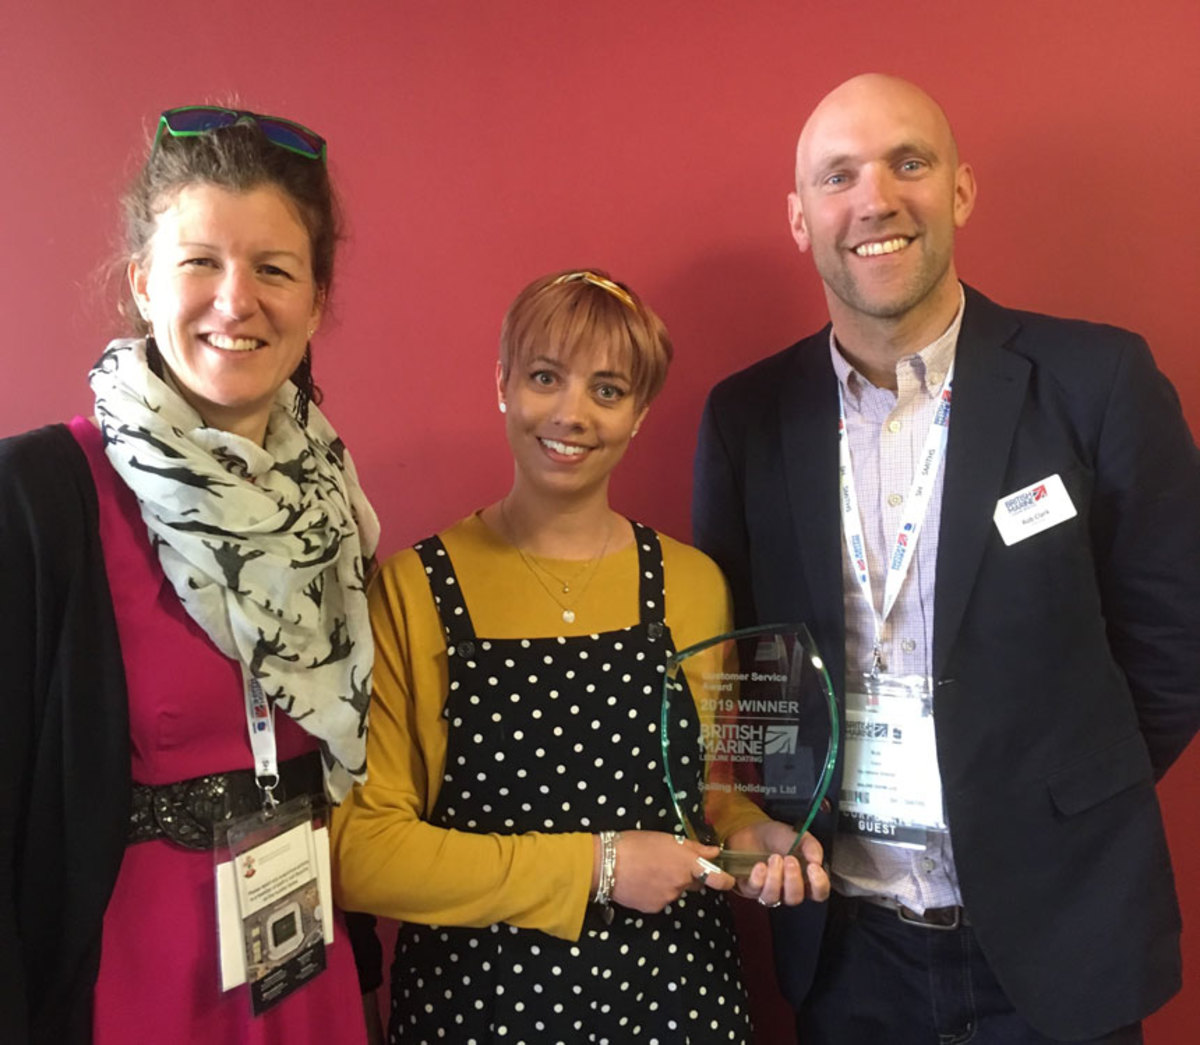 Staff from Sailing Holidays accept the British Marine Leisure Boating Customer Service Award.